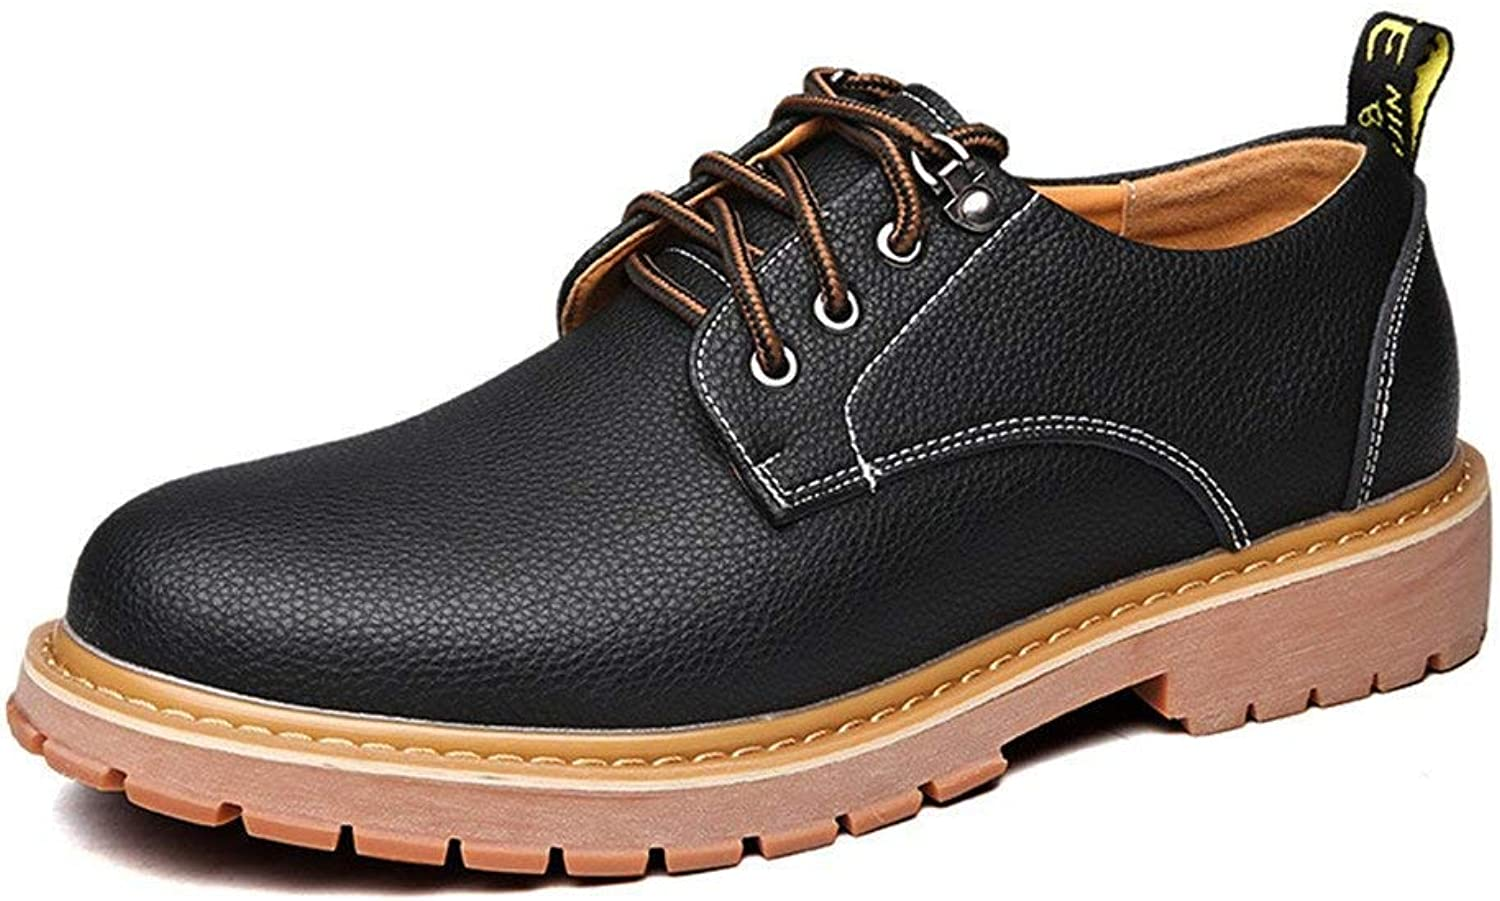 Oudan 2018 Men's shoes PU Leather Casual Lace up Big Soft Sole Flats for Men (color  Brown, Size  42 EU) (color   Black, Size   43 EU)